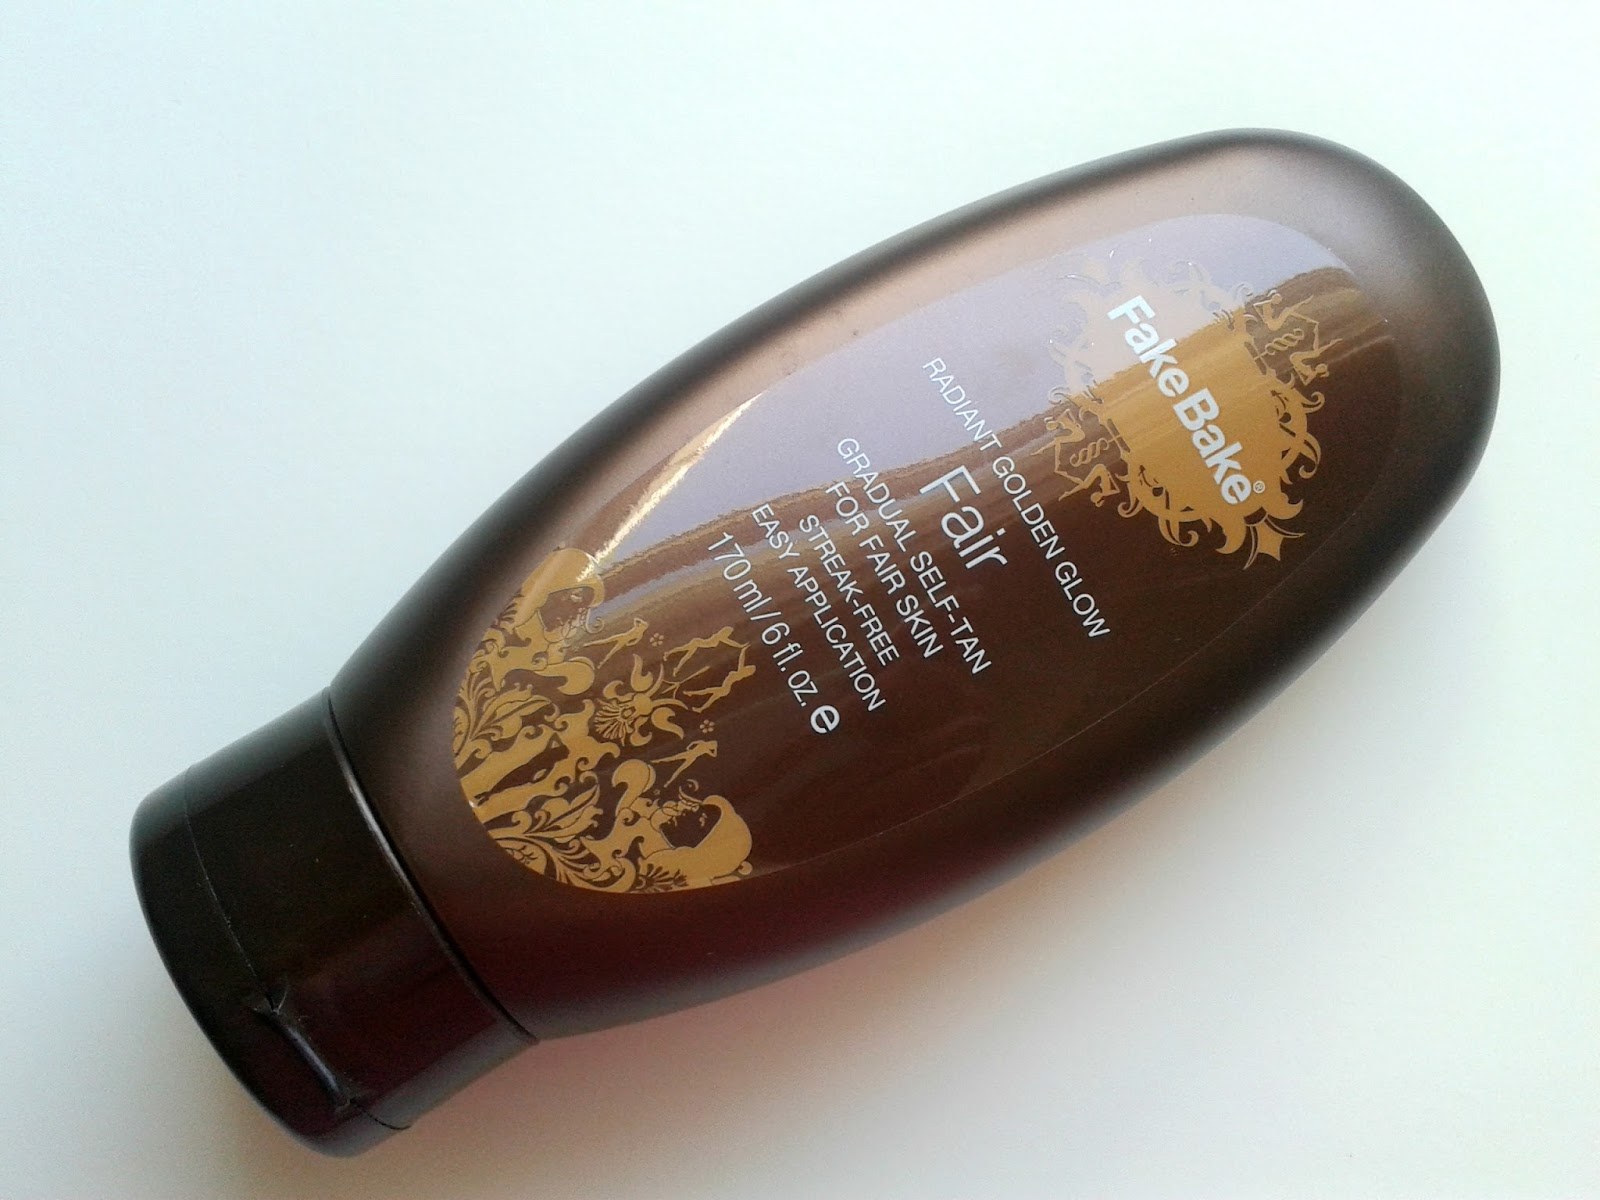 Fake Bake Fair Self Tanning Lotion Summer Self Tanning Beauty Review